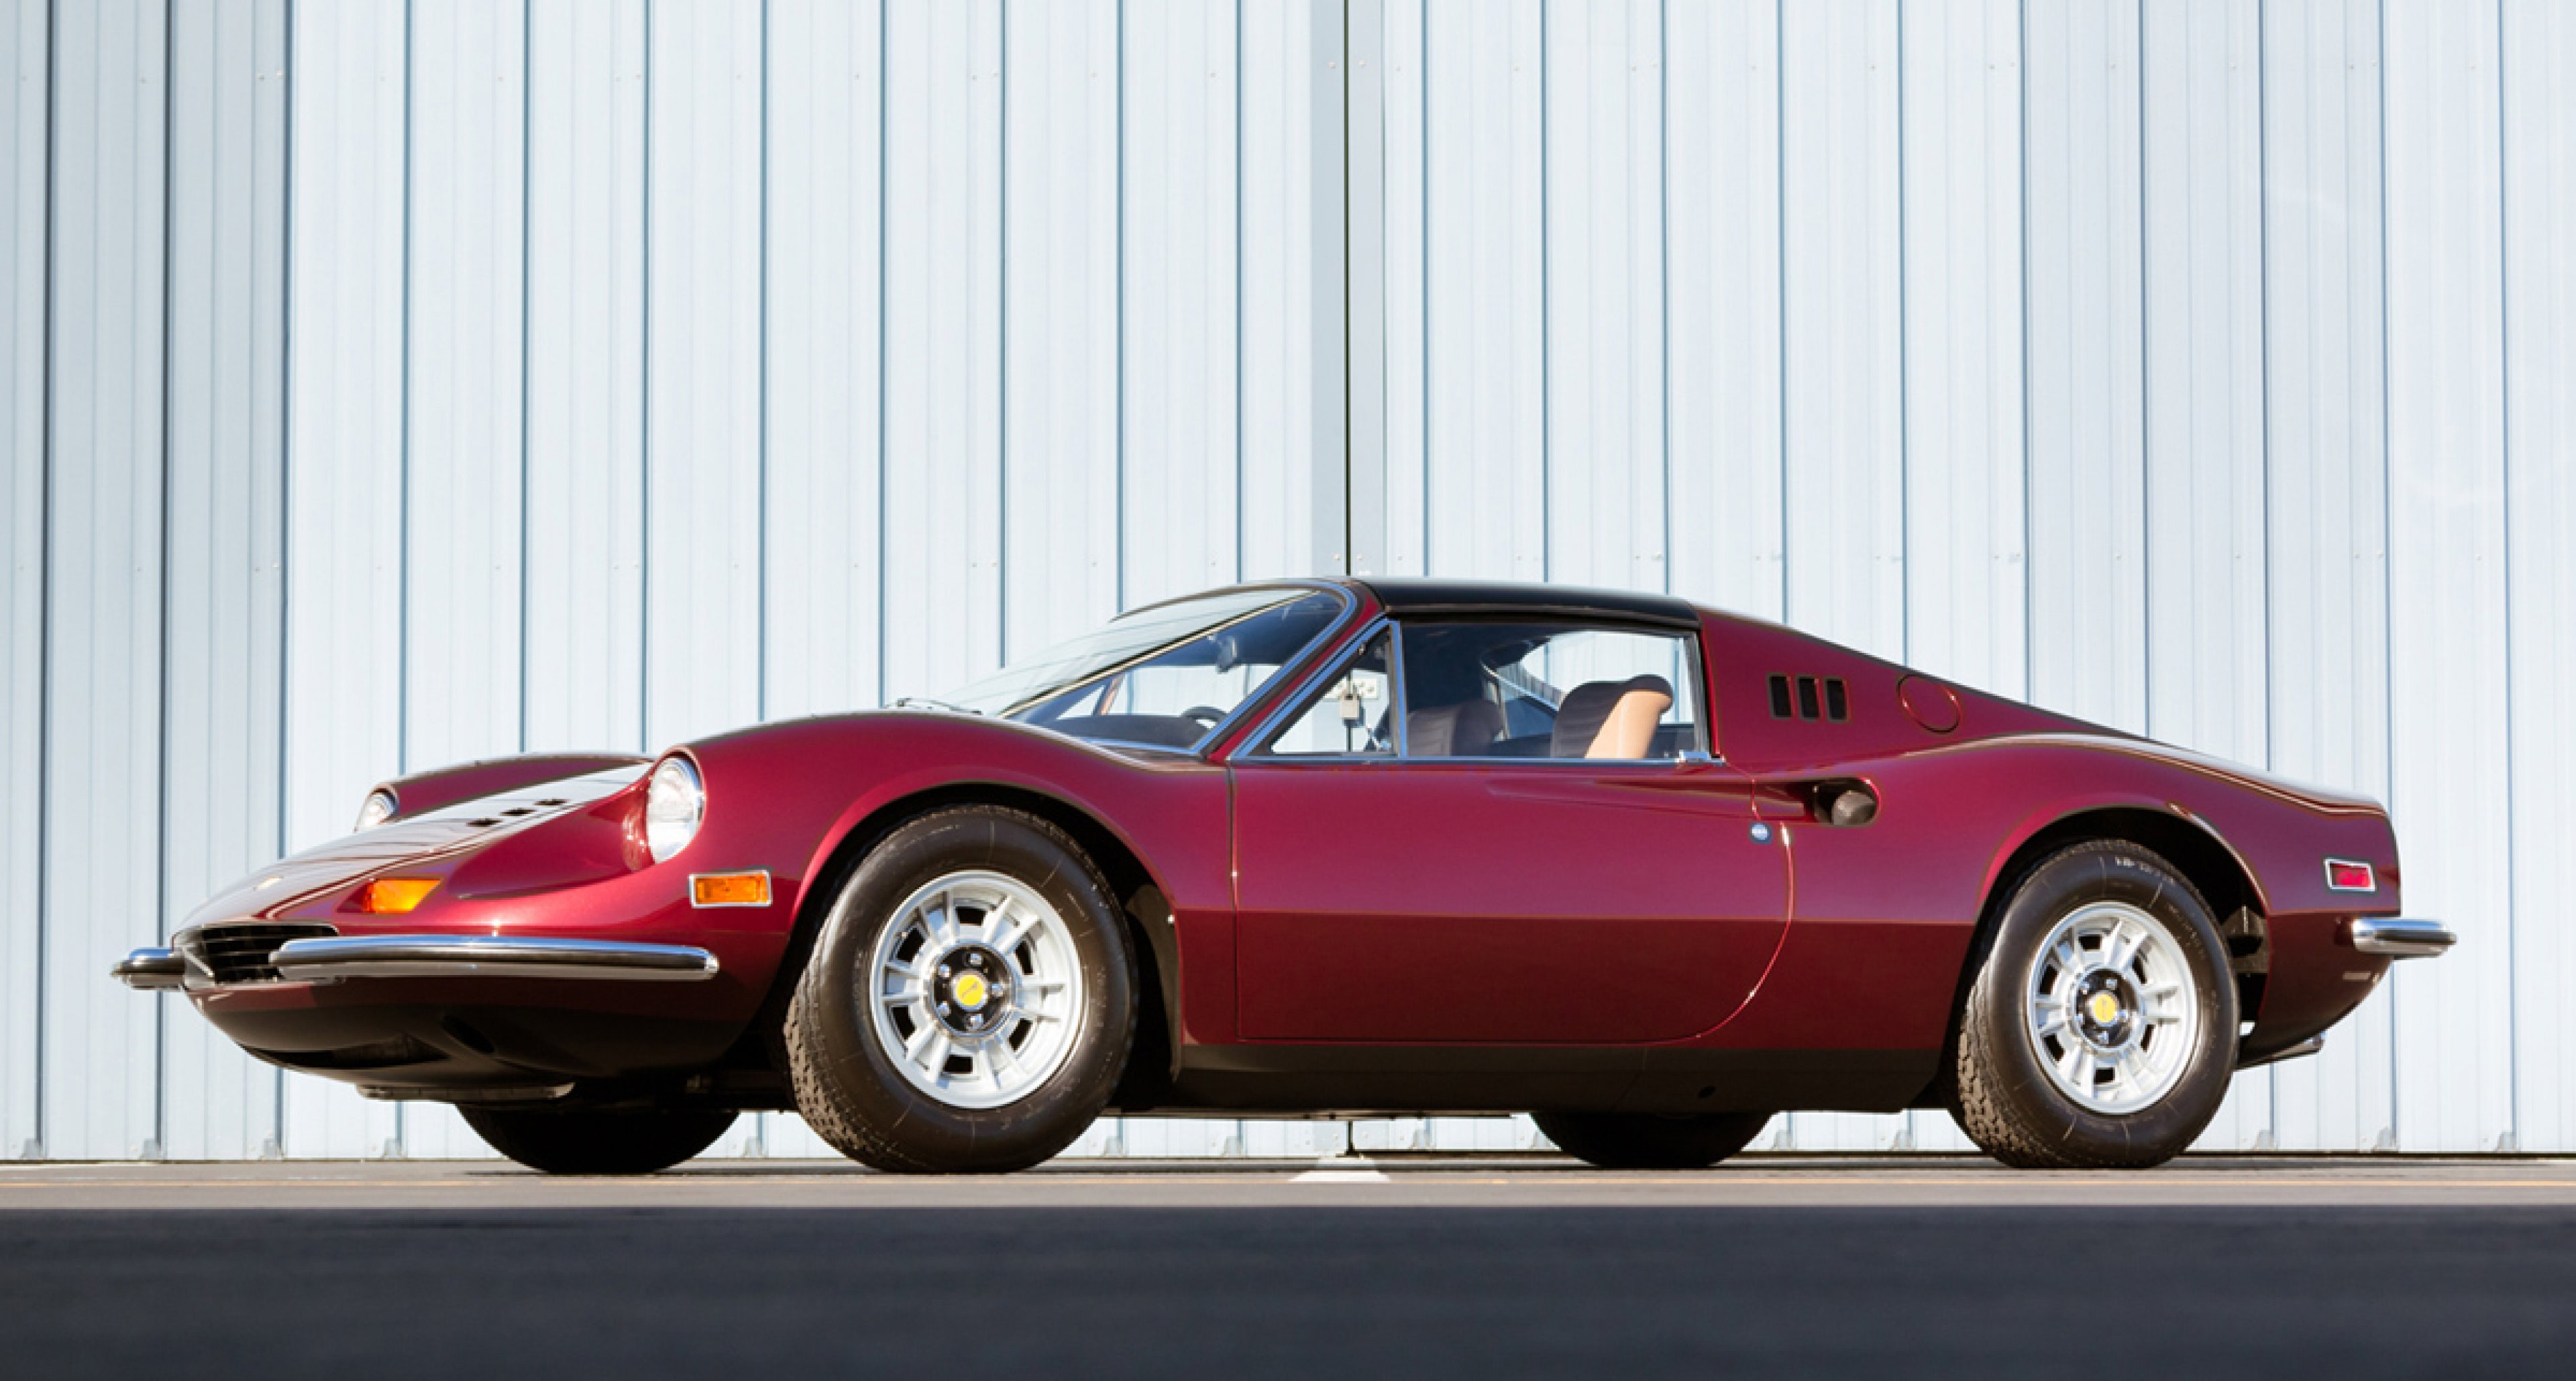 Gooding and Co: 1973 Ferrari 246 GTS Dino (Lot 109)